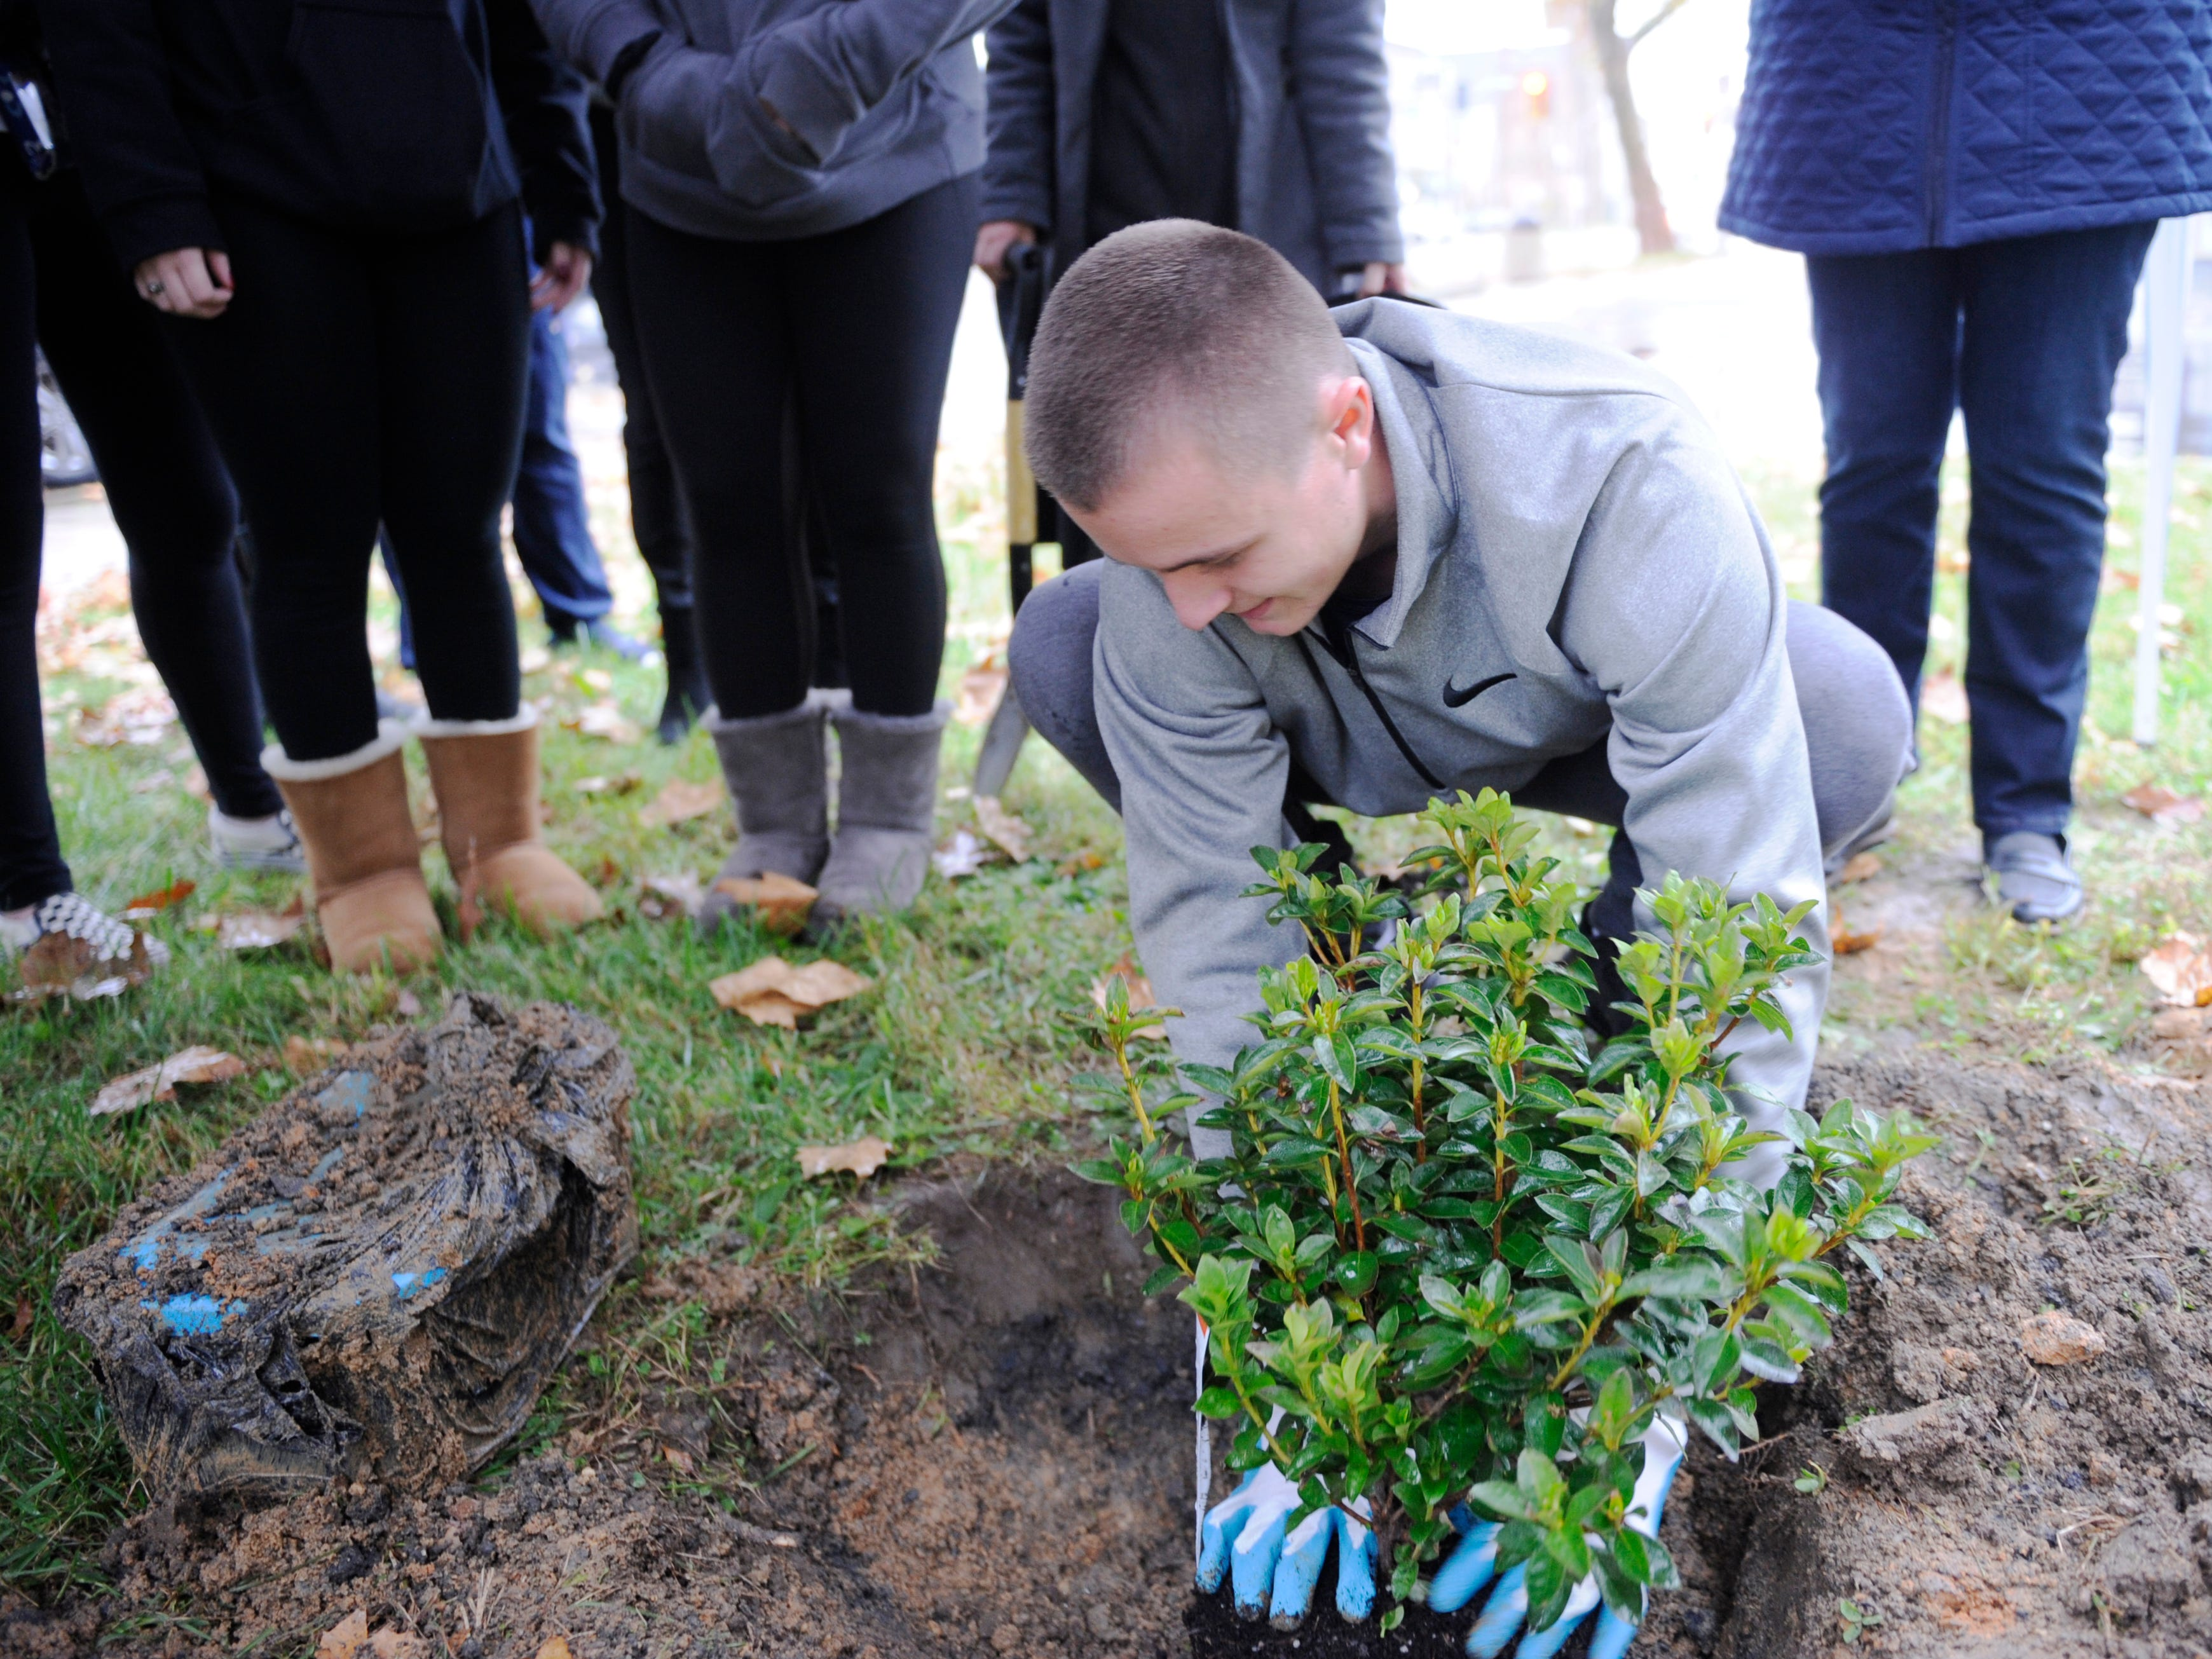 Nick Vicente, a St. Augustine senior, helps plant a flowering shrub in the space vacated by a time capsule that his second grade Bishop Schad class buried a decade ago.